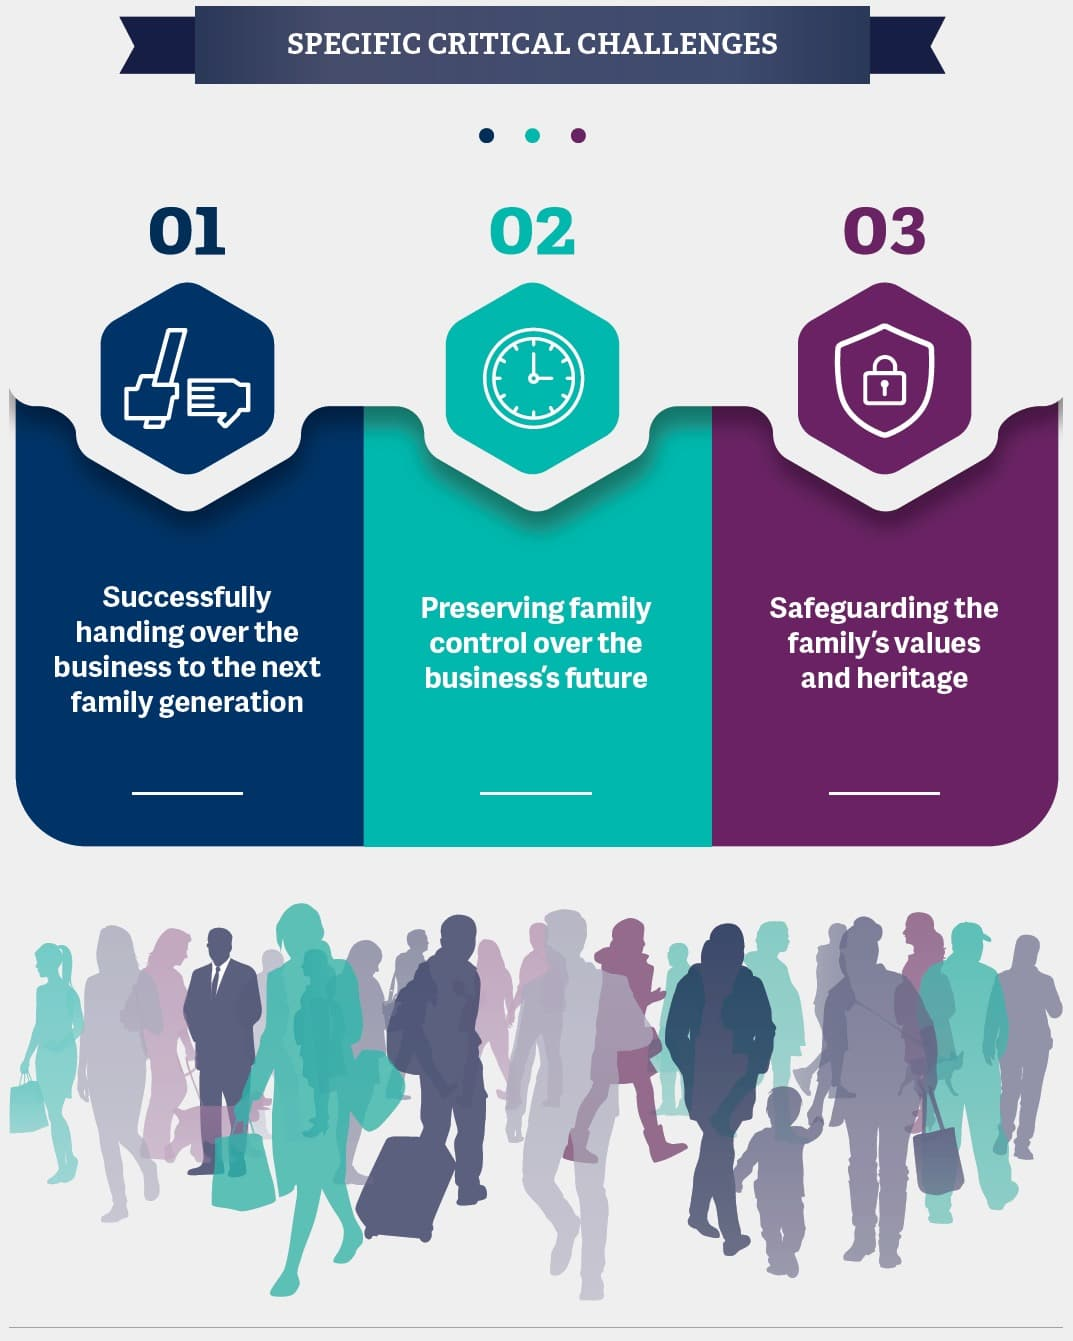 2019-pan-european-rra-study-on-family-owned-business-img-09.jpeg